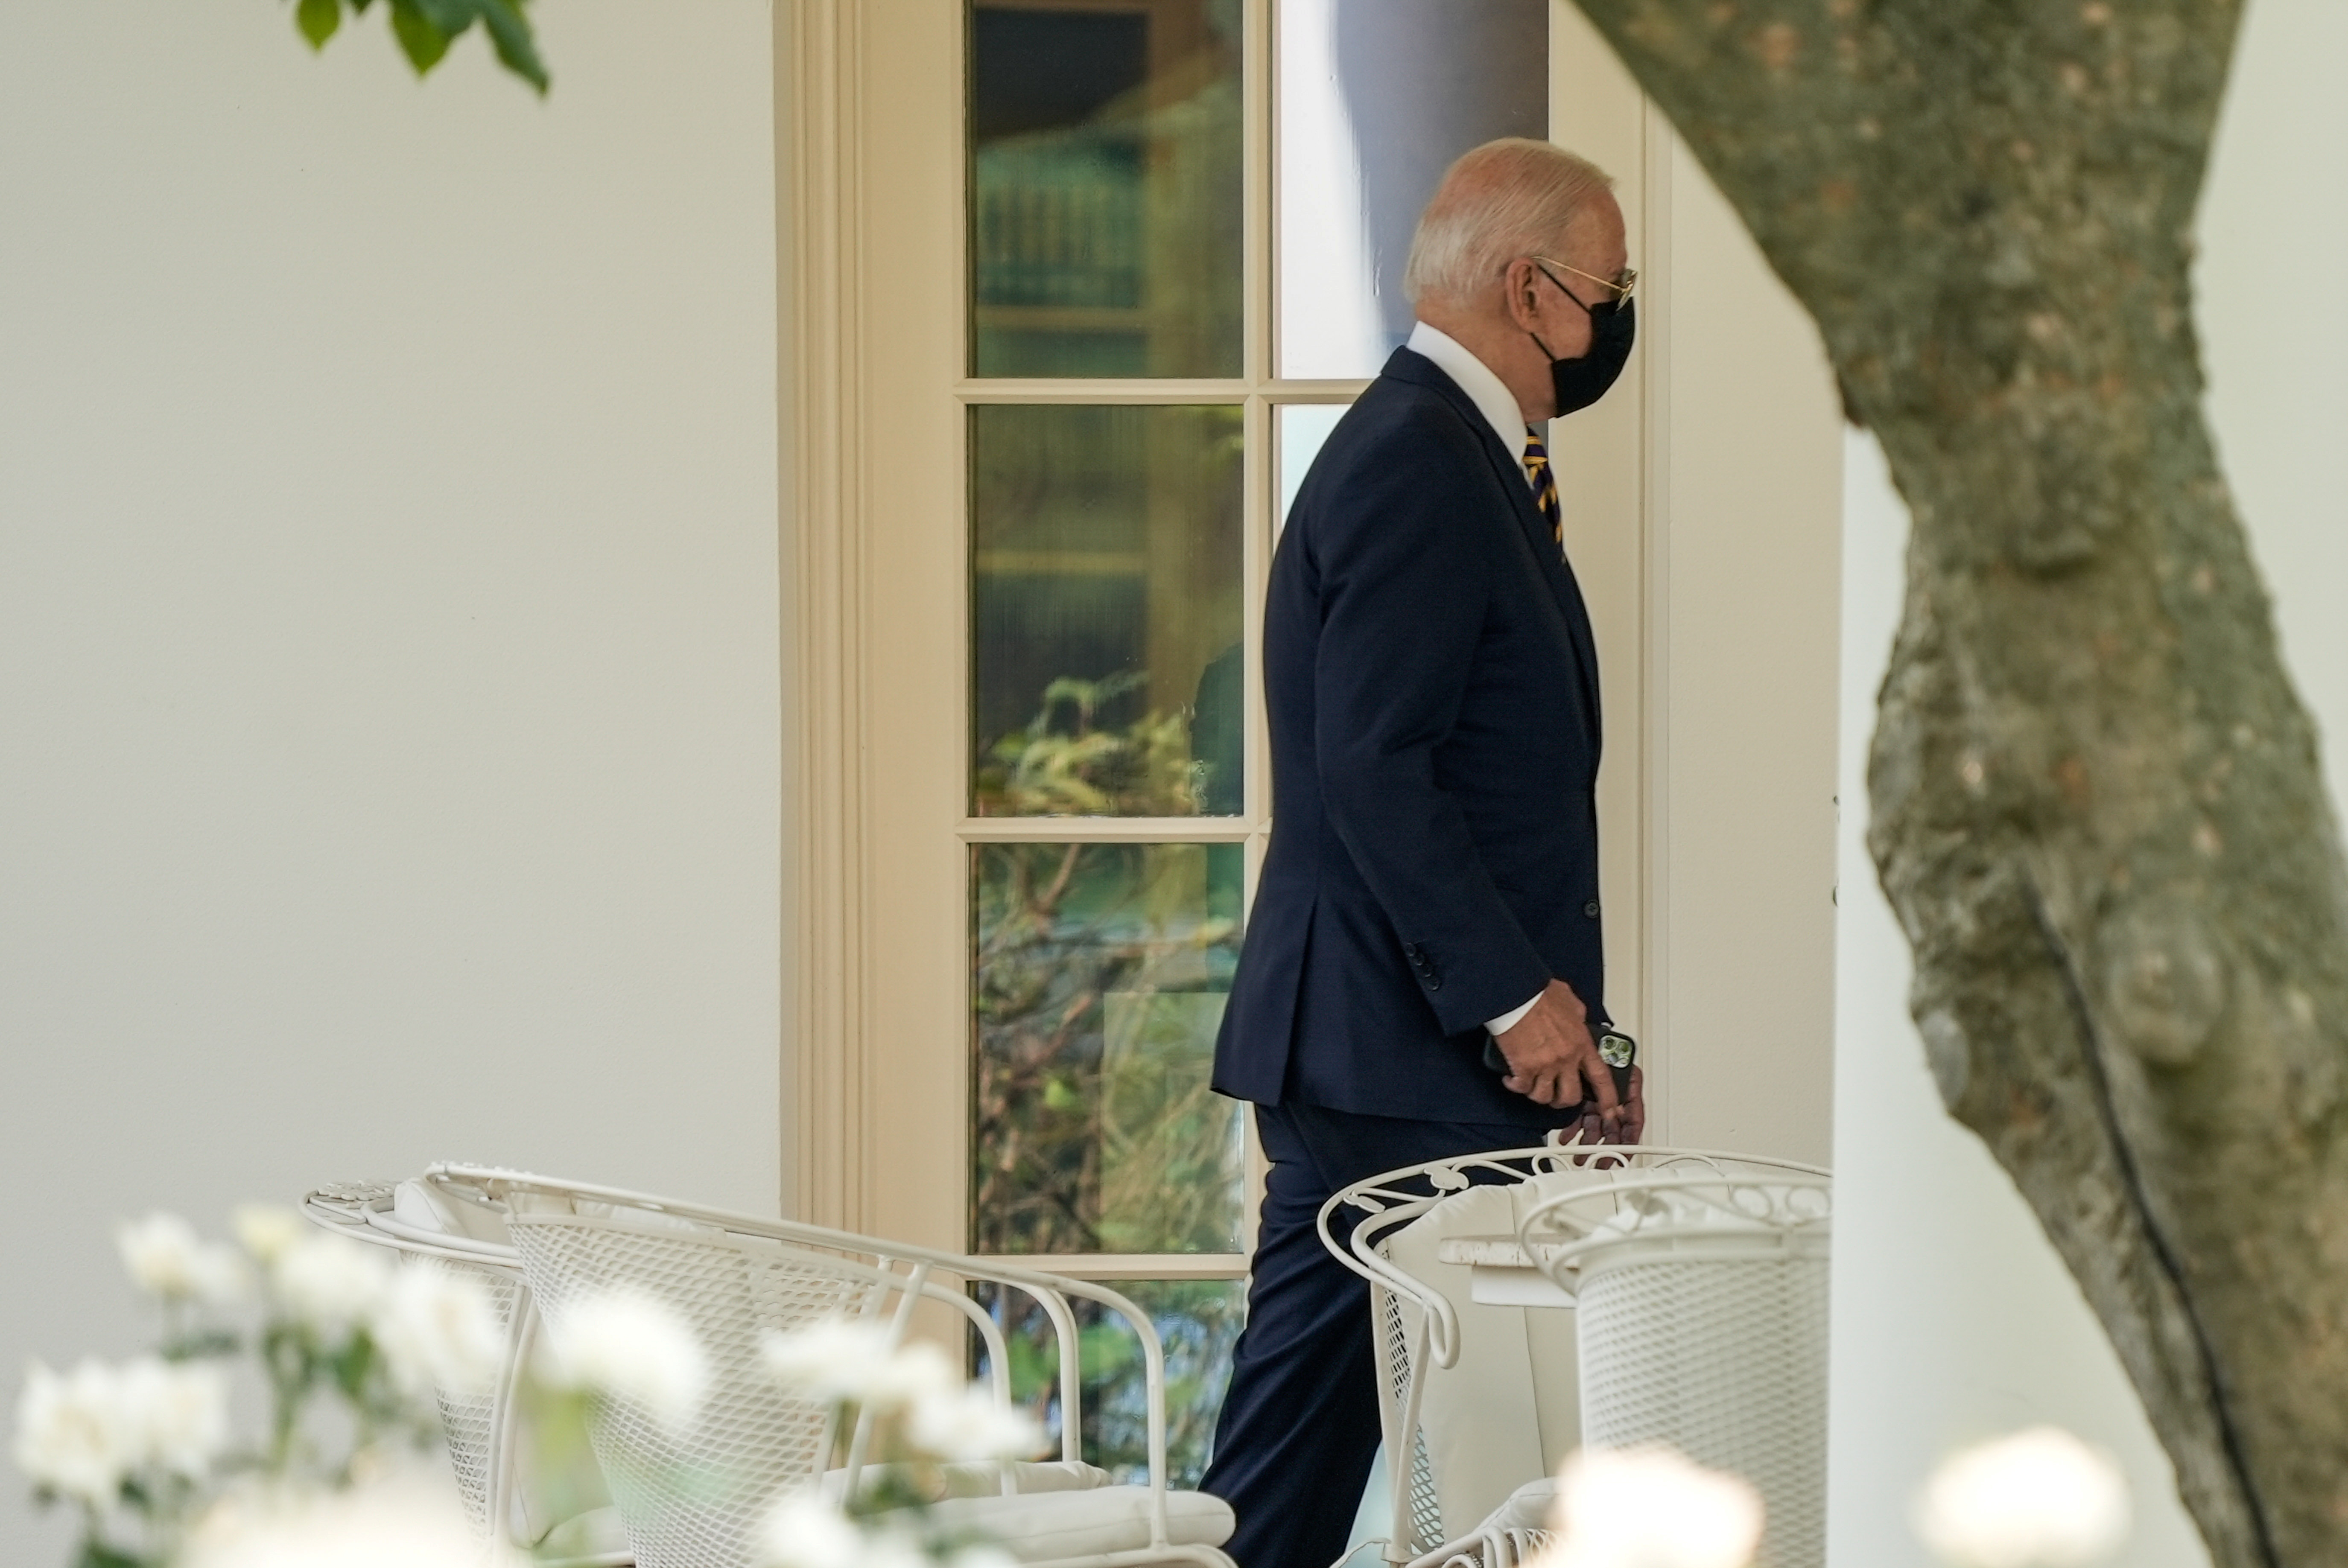 U.S. President Joe Biden returns from Lower Macungie Township, Pennsylvania and walks across the South Lawn to the Oval Office in Washington, D.C., U.S. July 28, 2021. REUTERS/Ken Cedeno